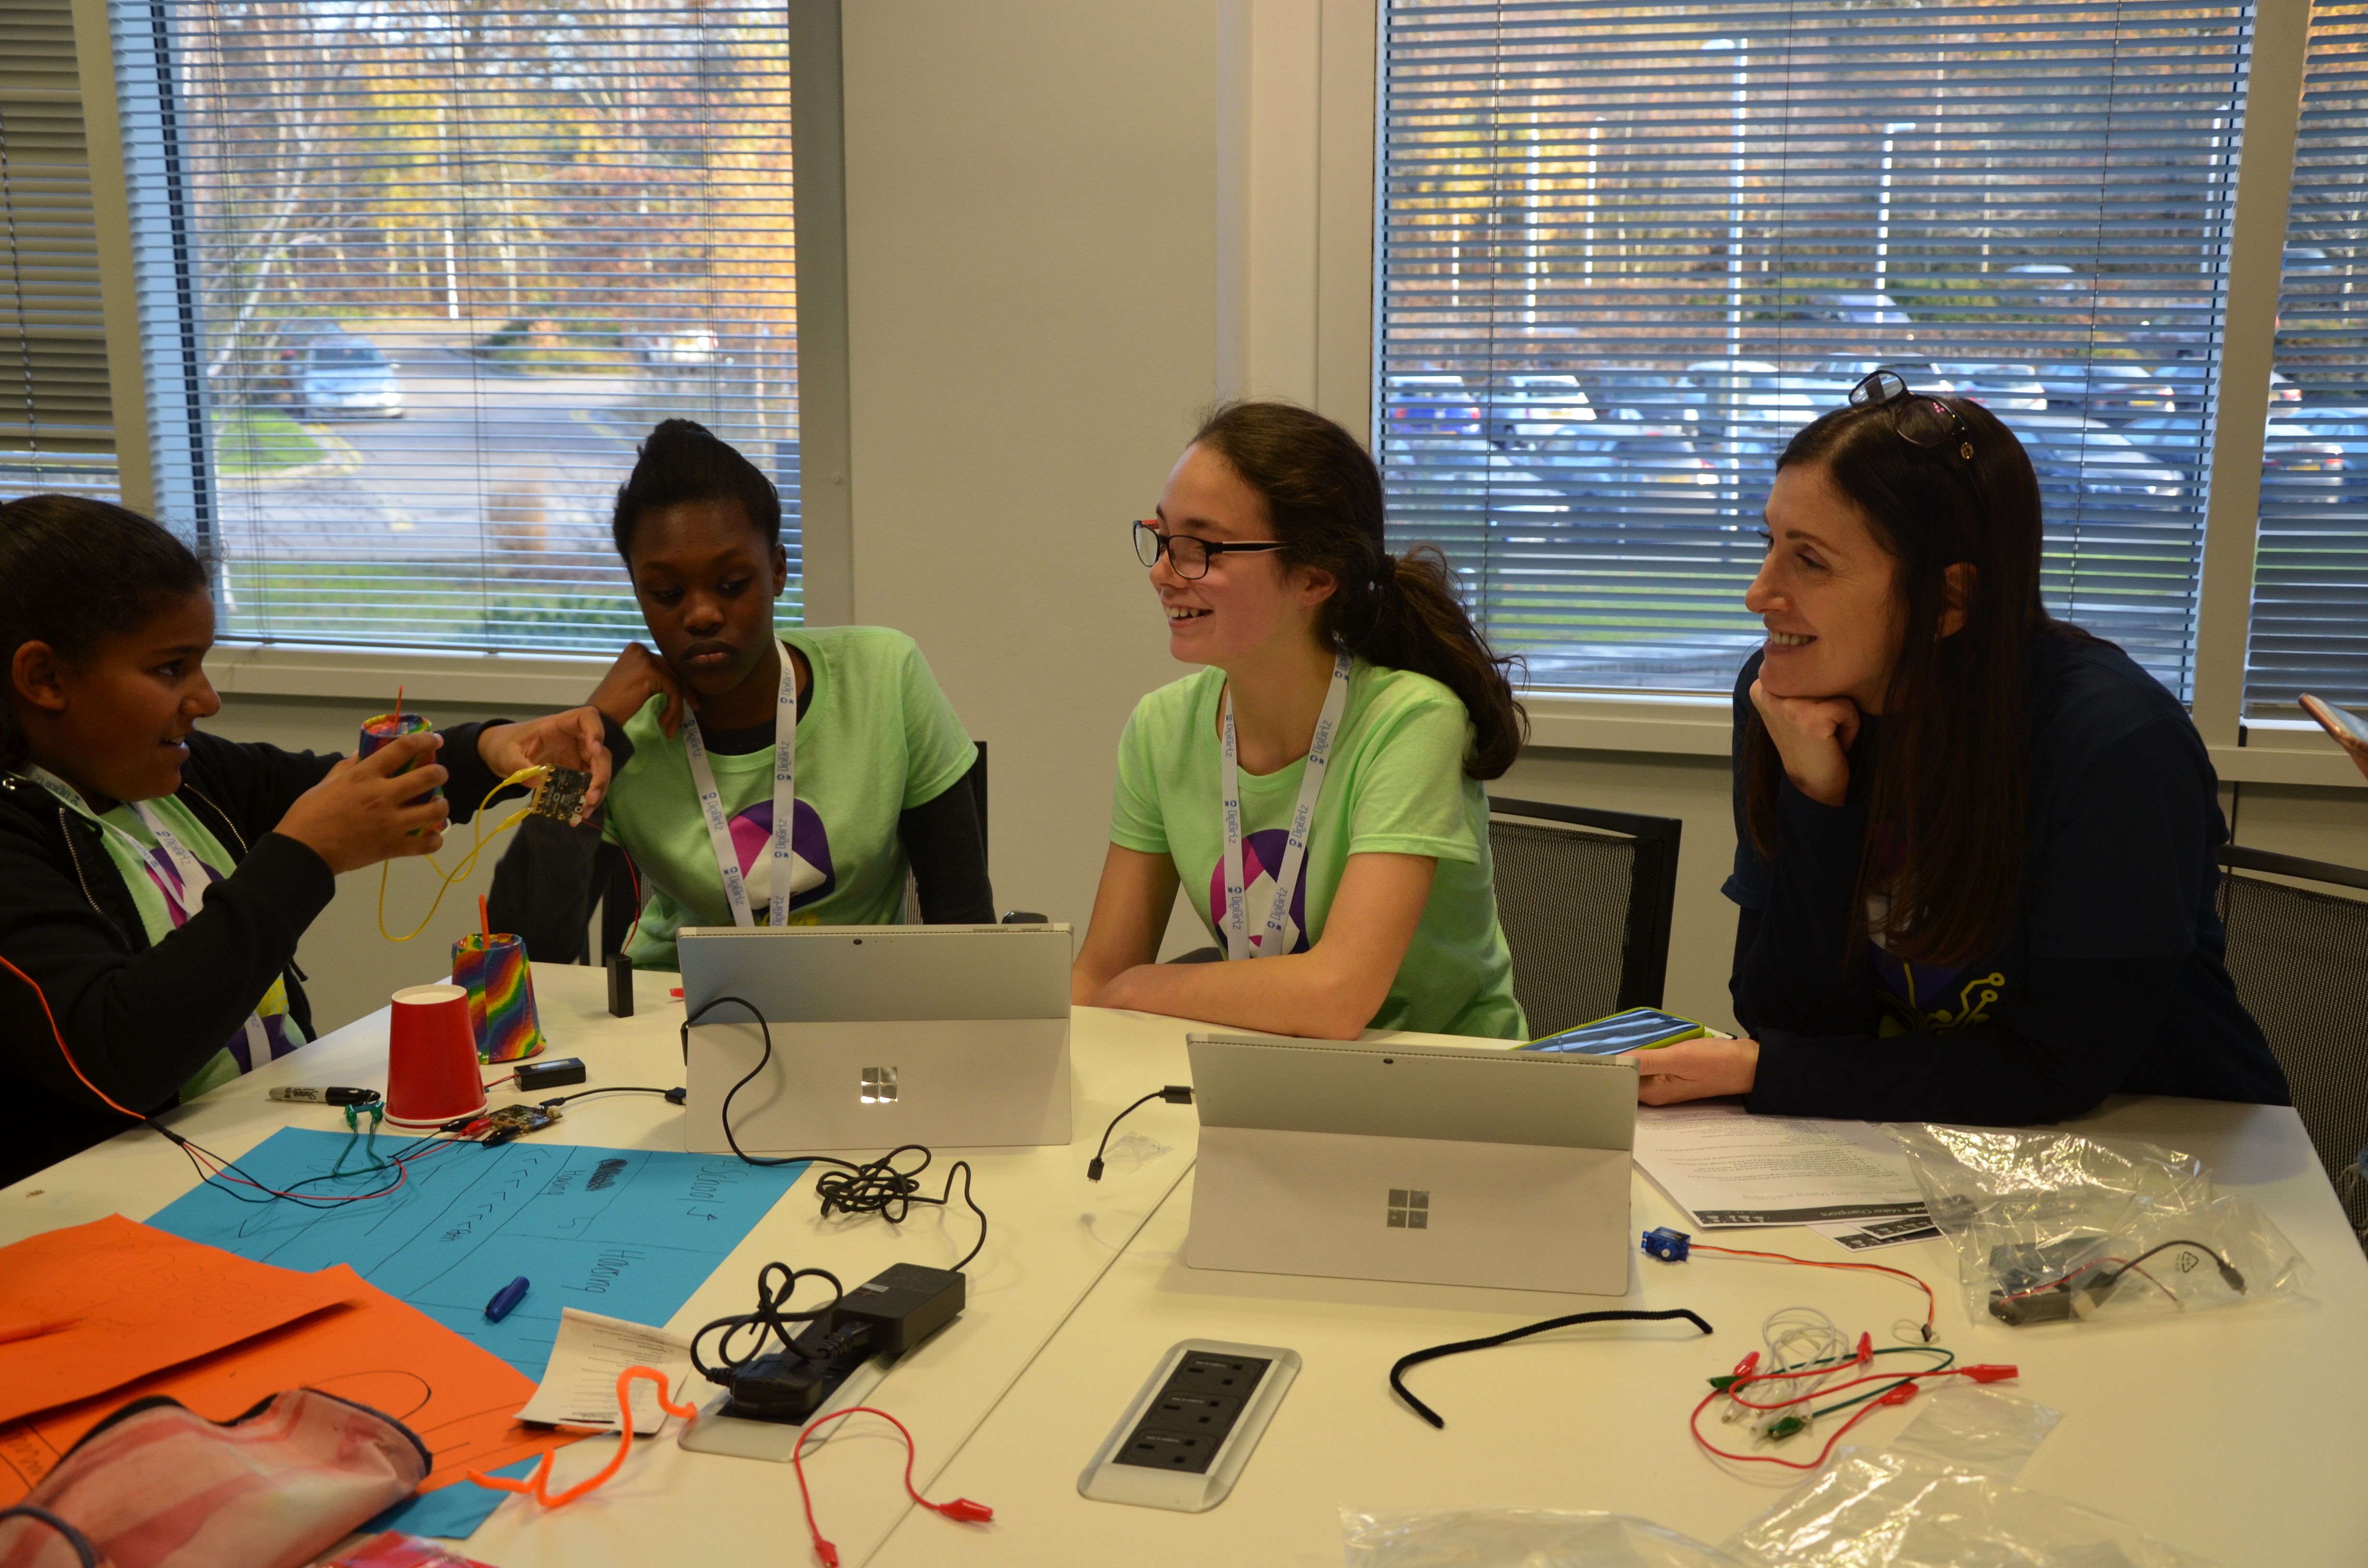 Cindy Rose, Microsoft UK Chief Executive, chats to schoolgirls at the DigiGirlz event